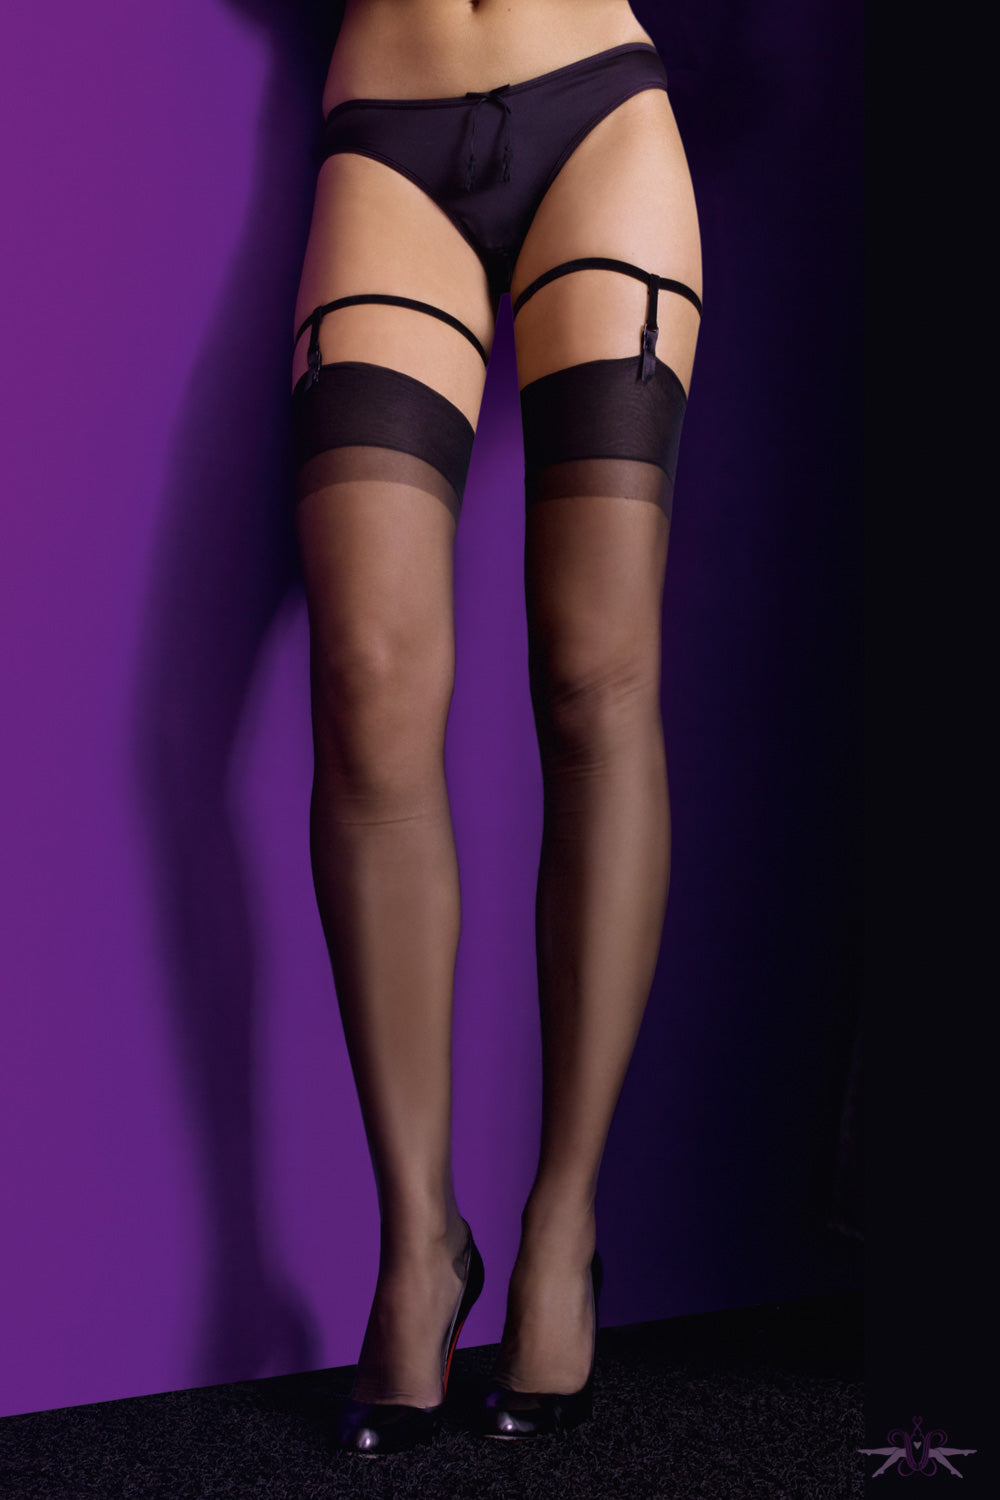 Maison Close 'Les Fetiches' Les Suspenders - Mayfair Stockings